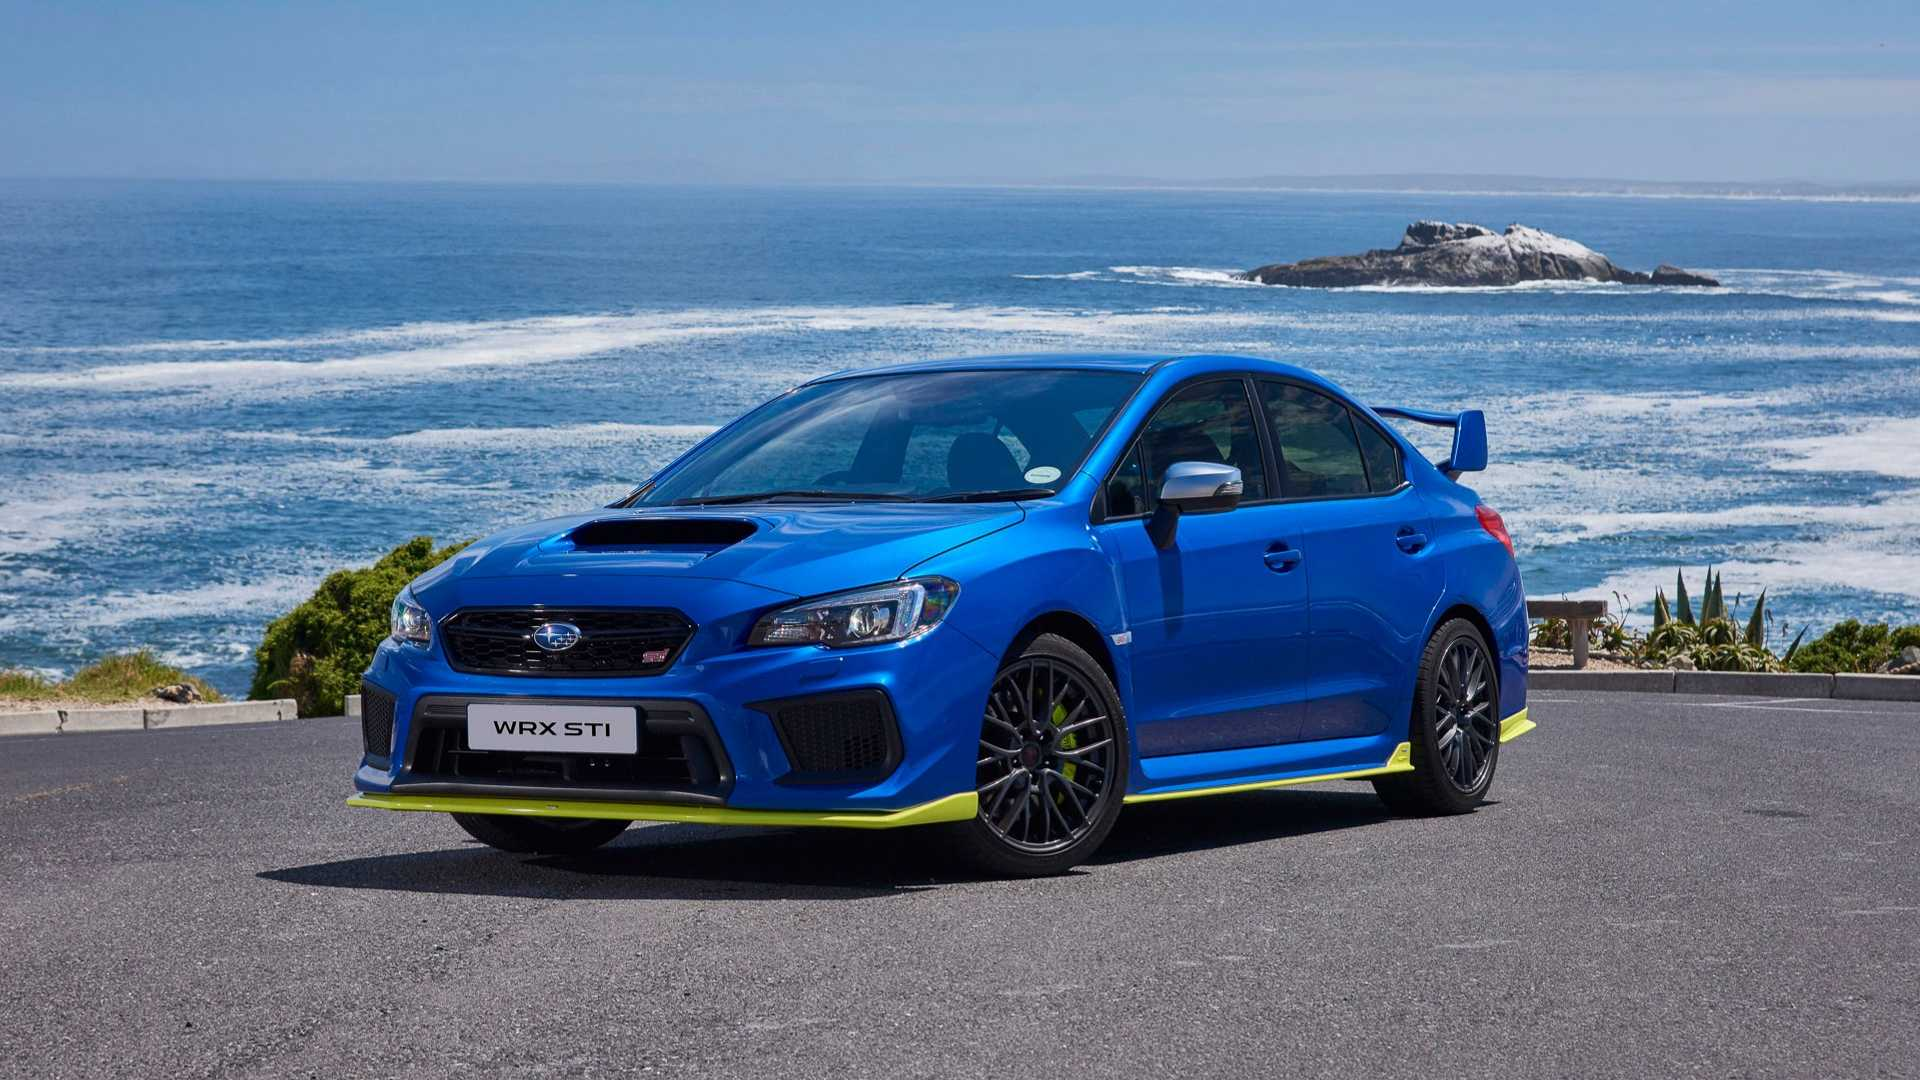 Subaru Builds Most Powerful WRX STI Ever, But There's A Catch